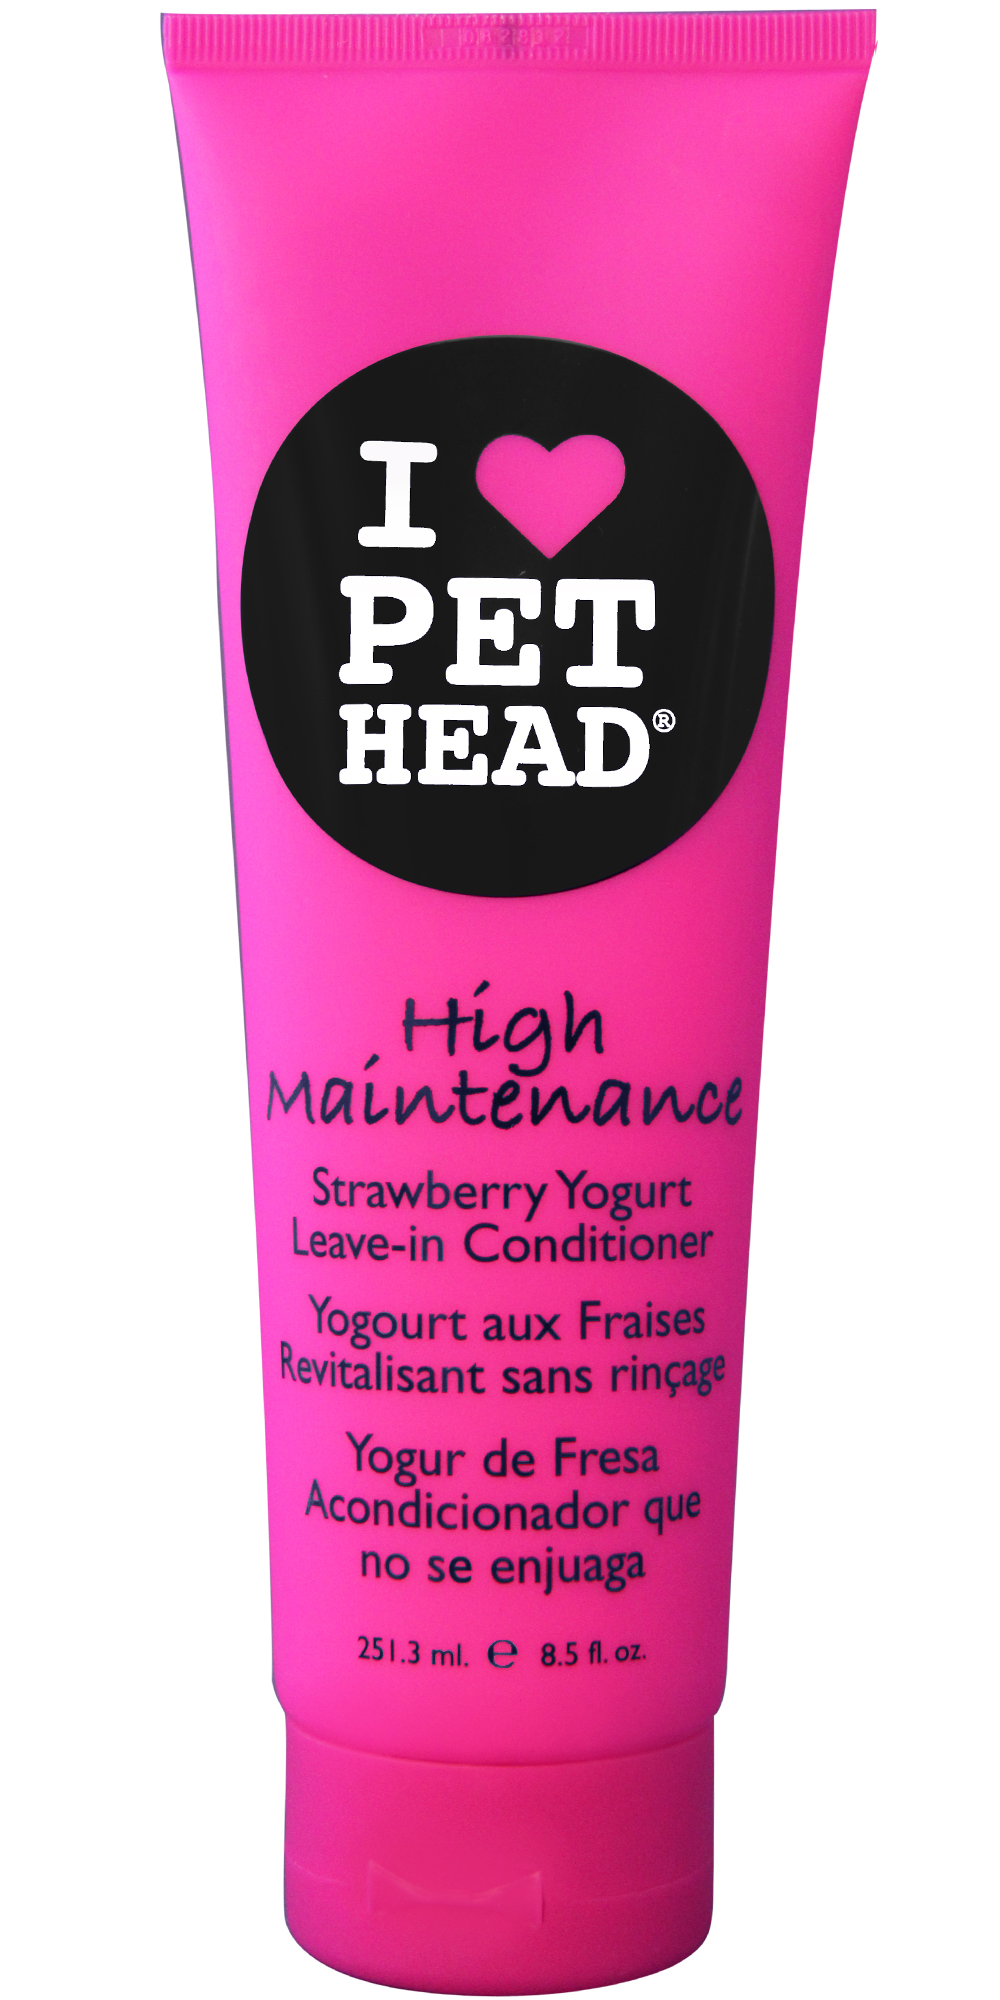 Good Shampoo And Conditioner For Dogs